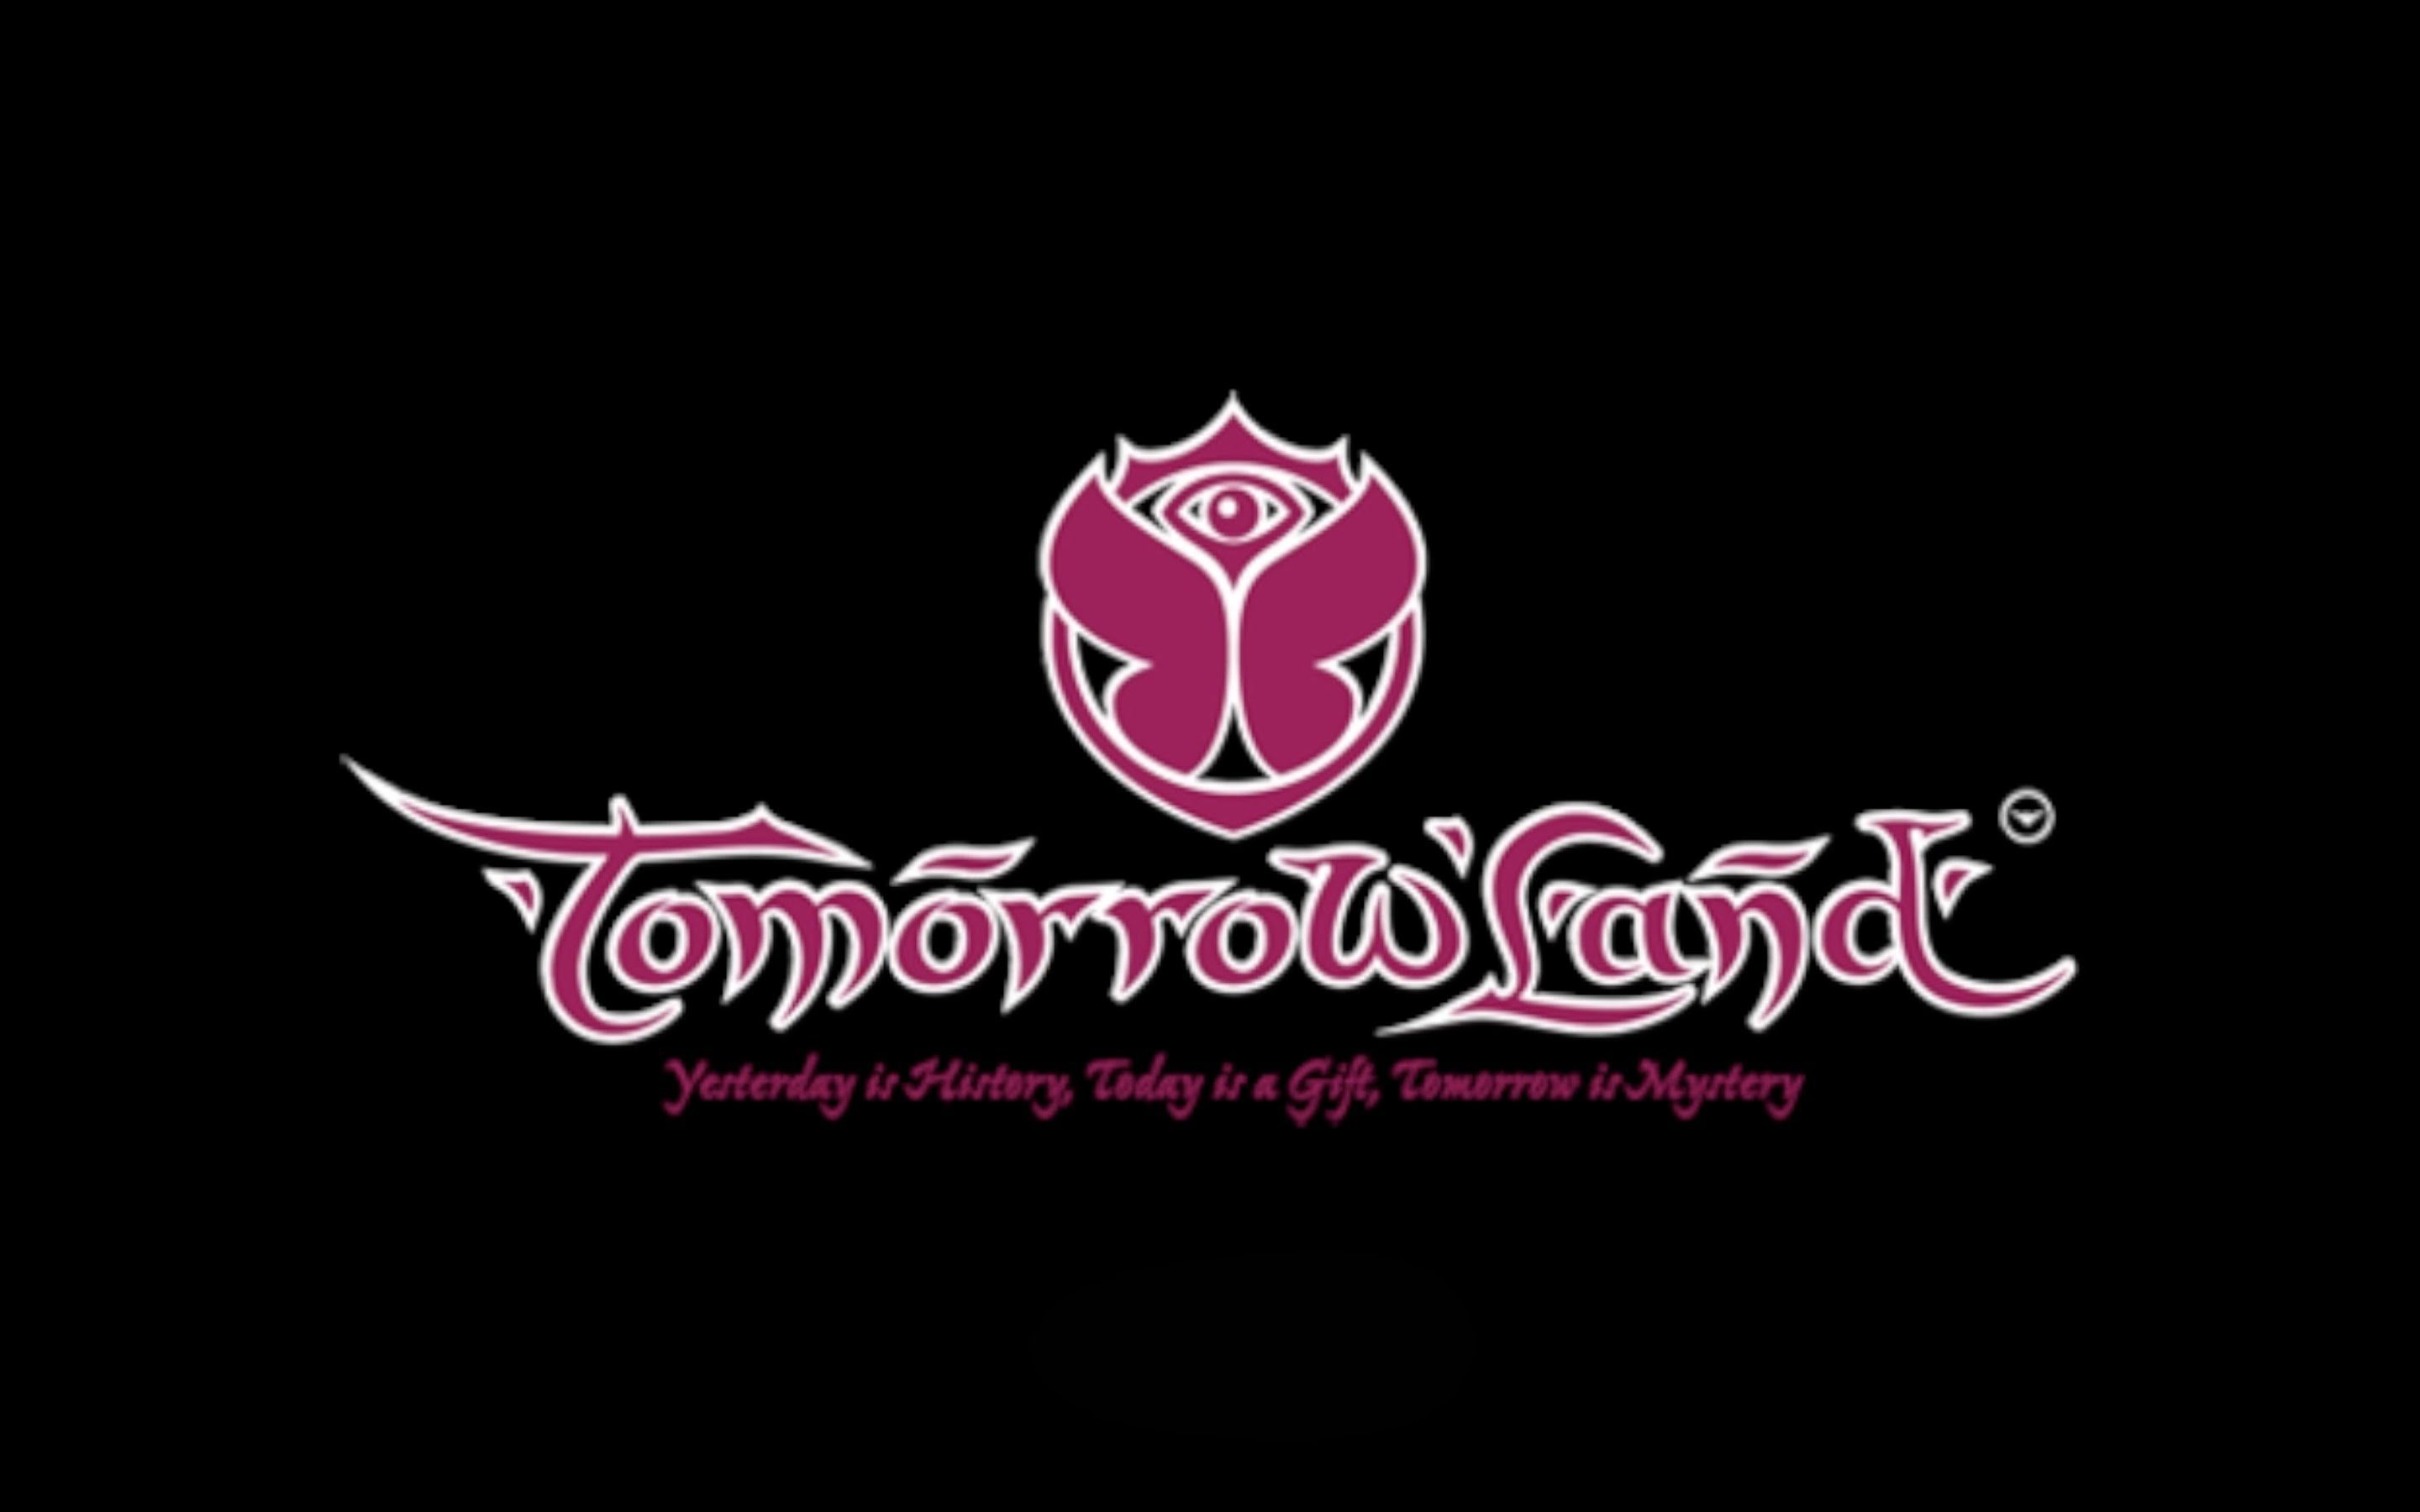 Tomorrowland Logo Wallpapers.